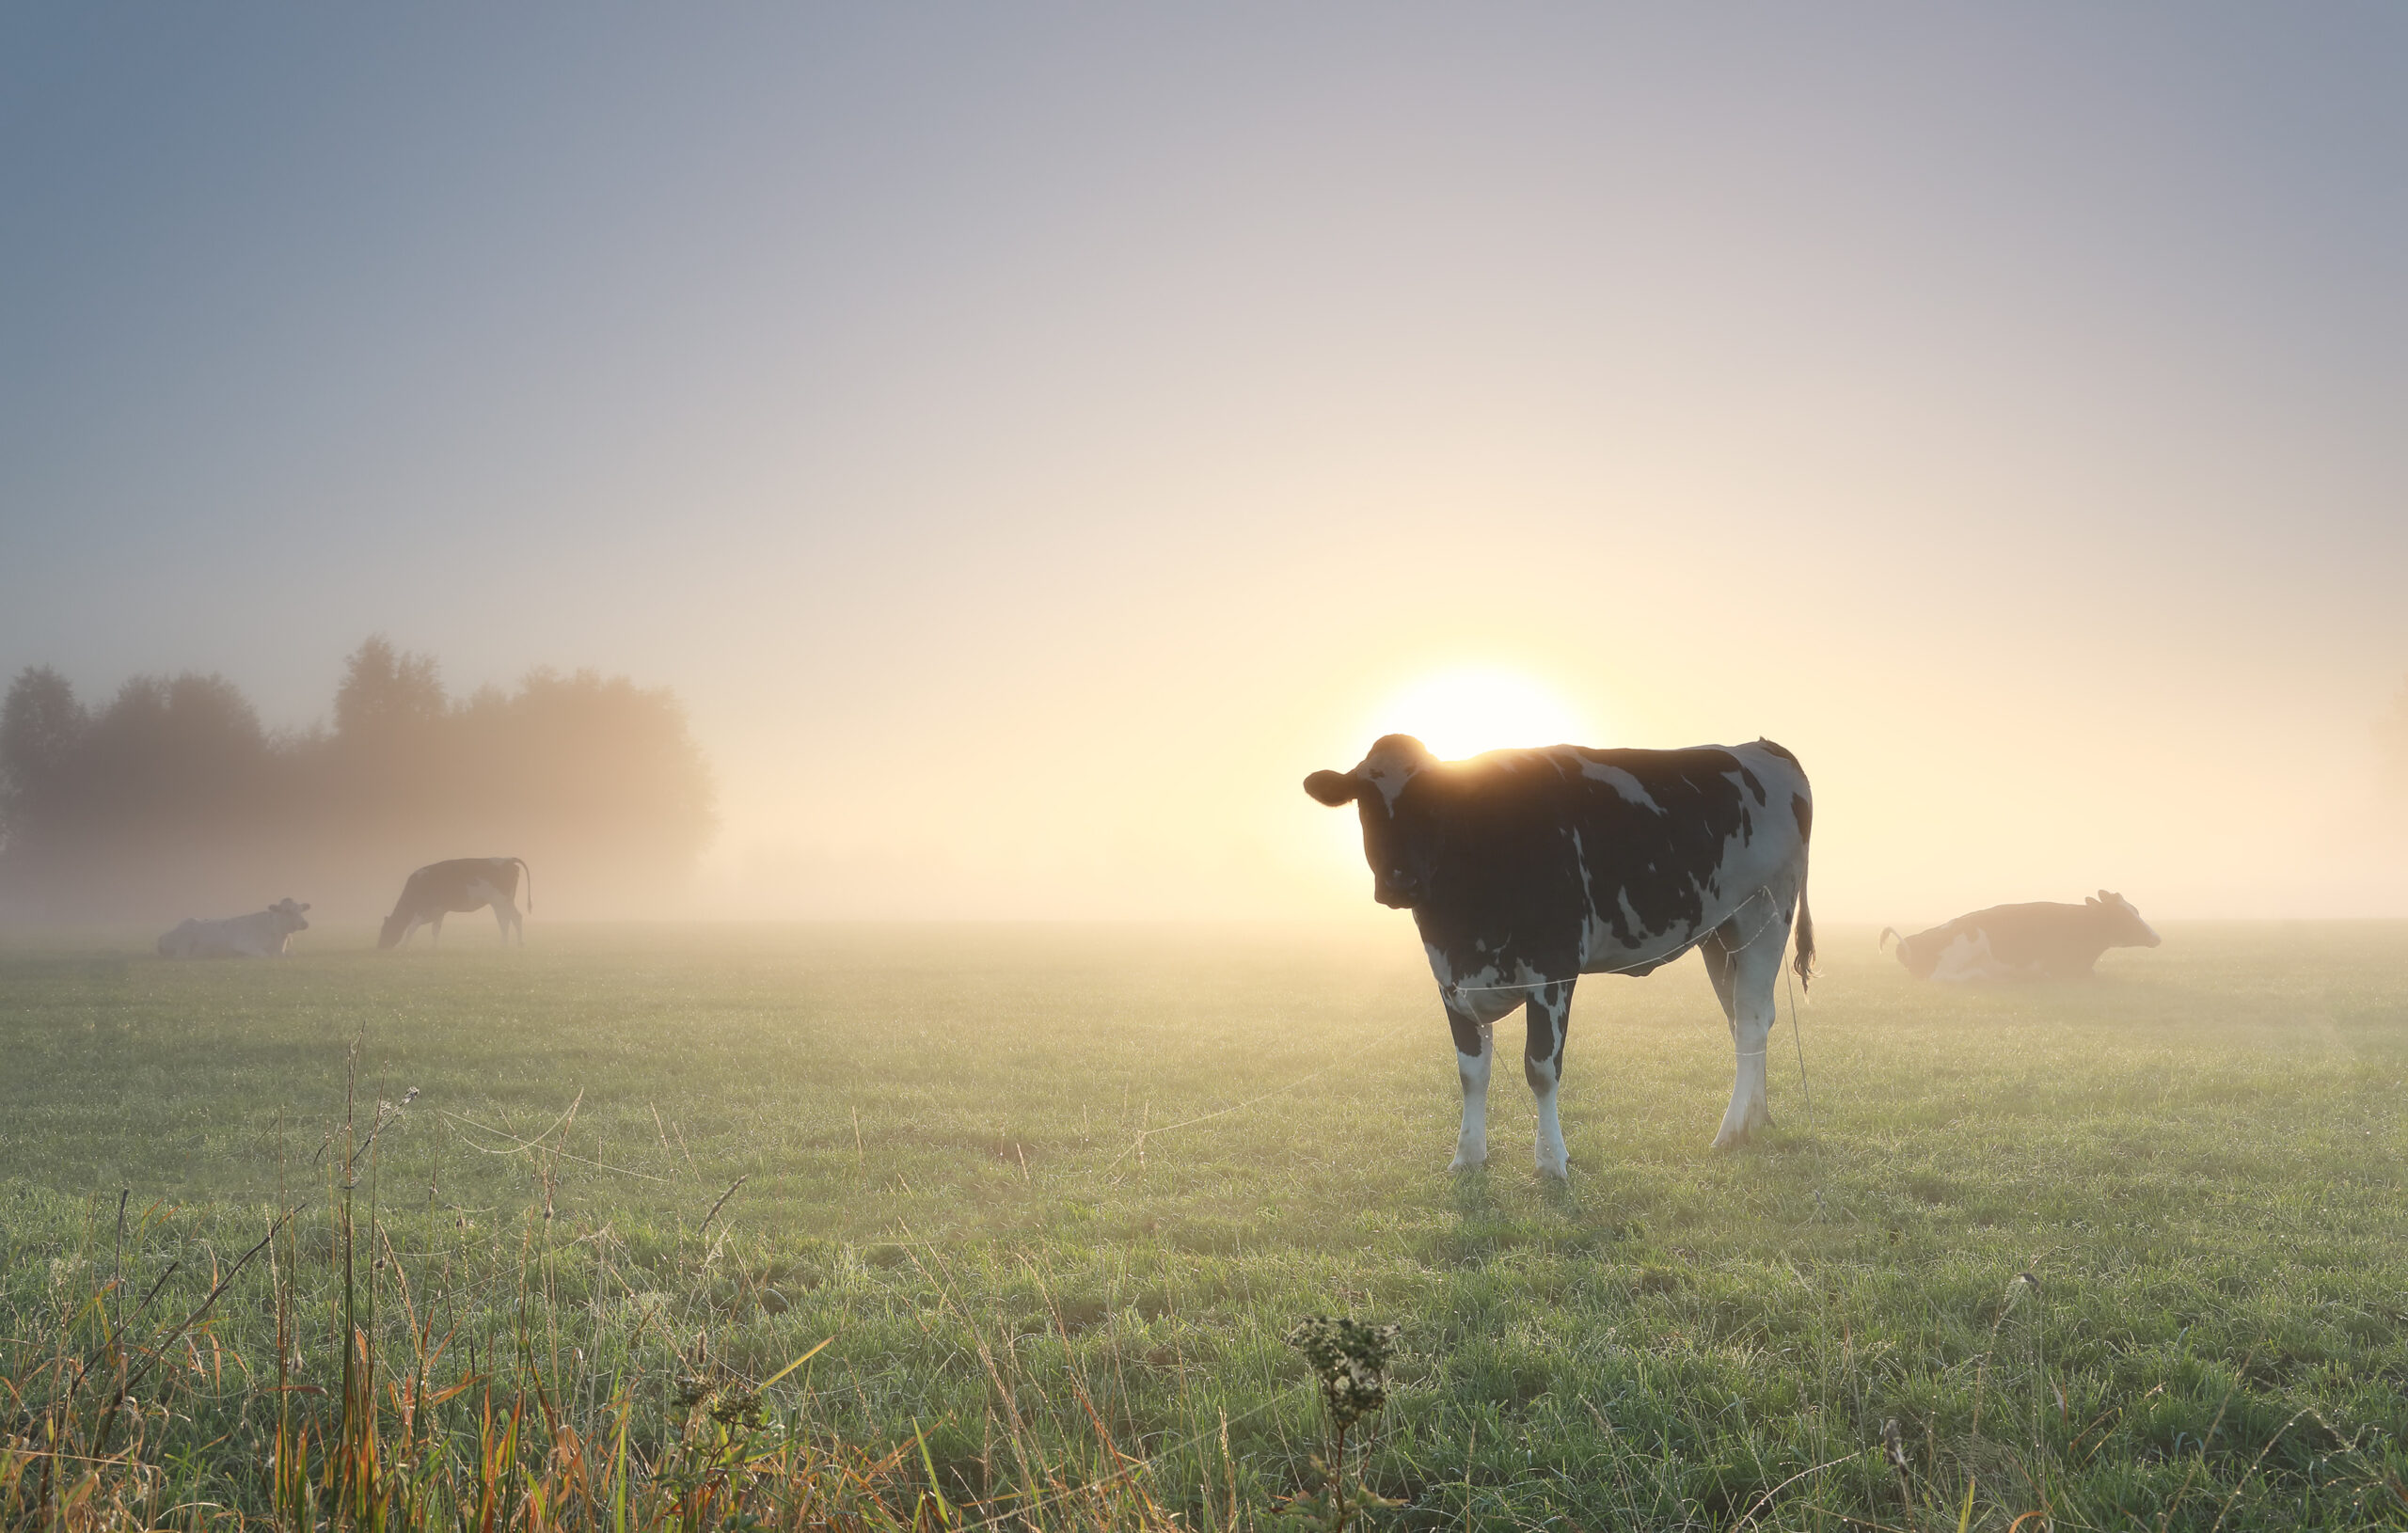 cows grazing on misty pasture at dawn in summer